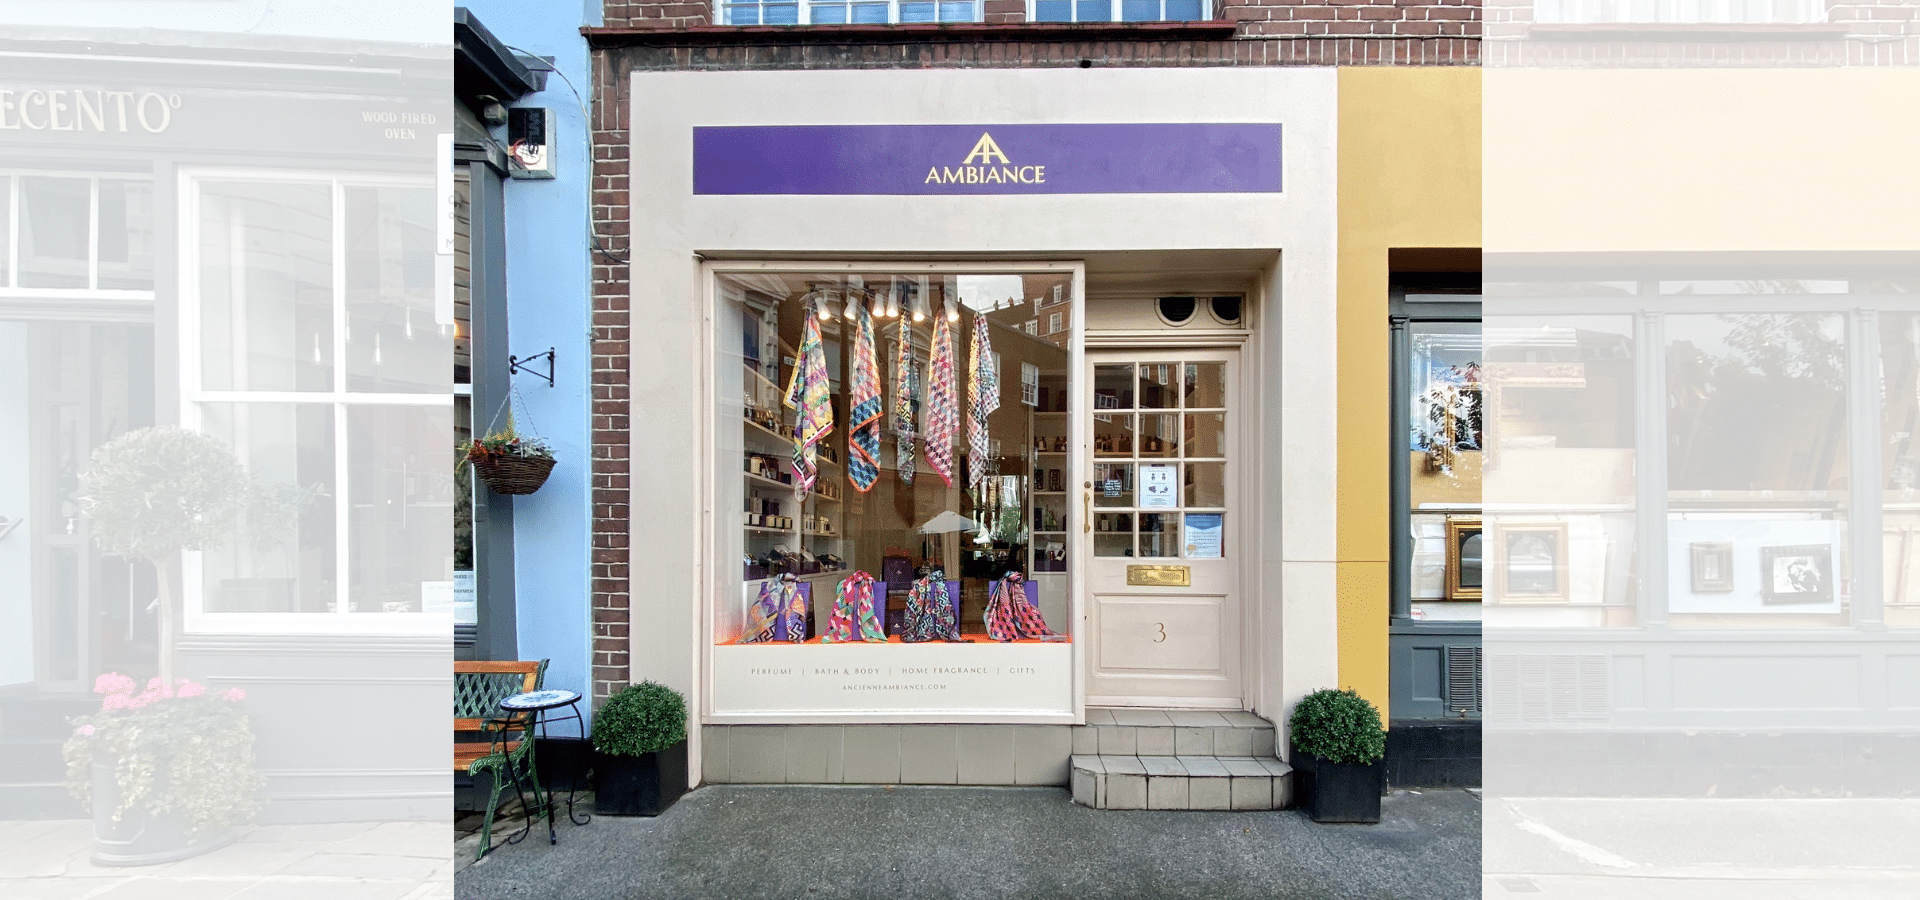 ancienne ambiance luxury boutique in the heart of chelsea